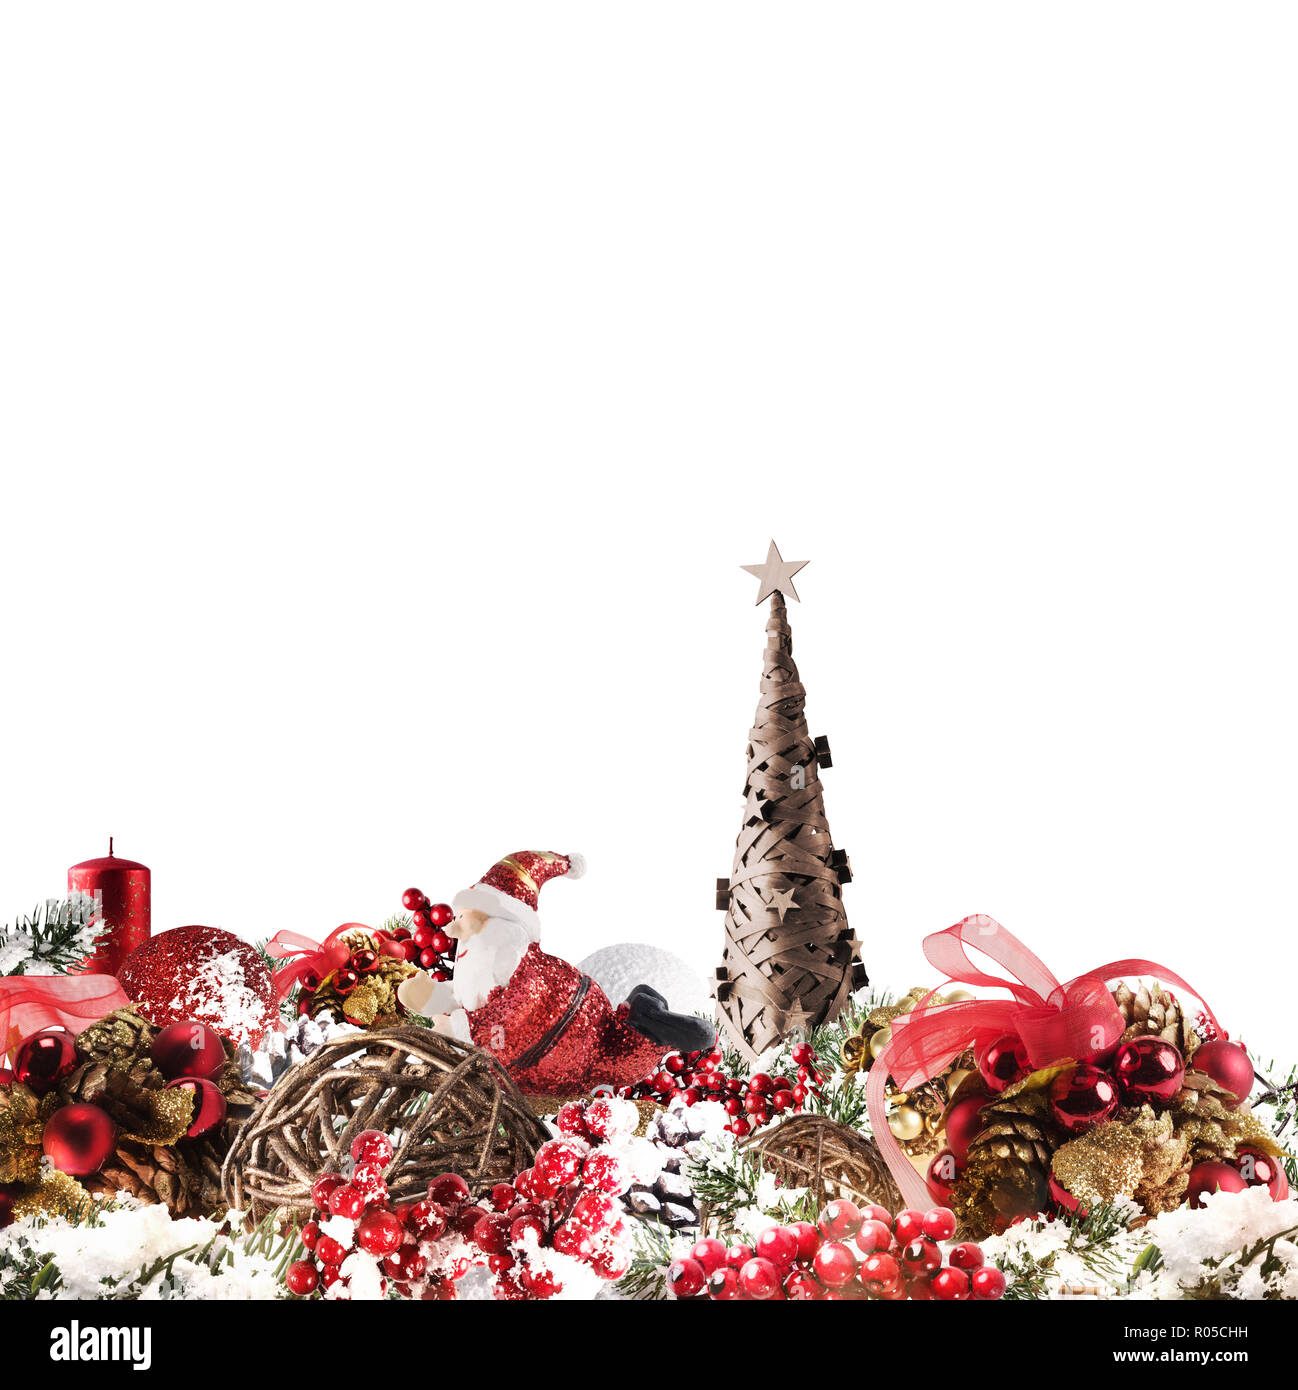 Christmas background concept. Shimmering Christmas decorations with tree, Santa Claus and candles - Stock Image